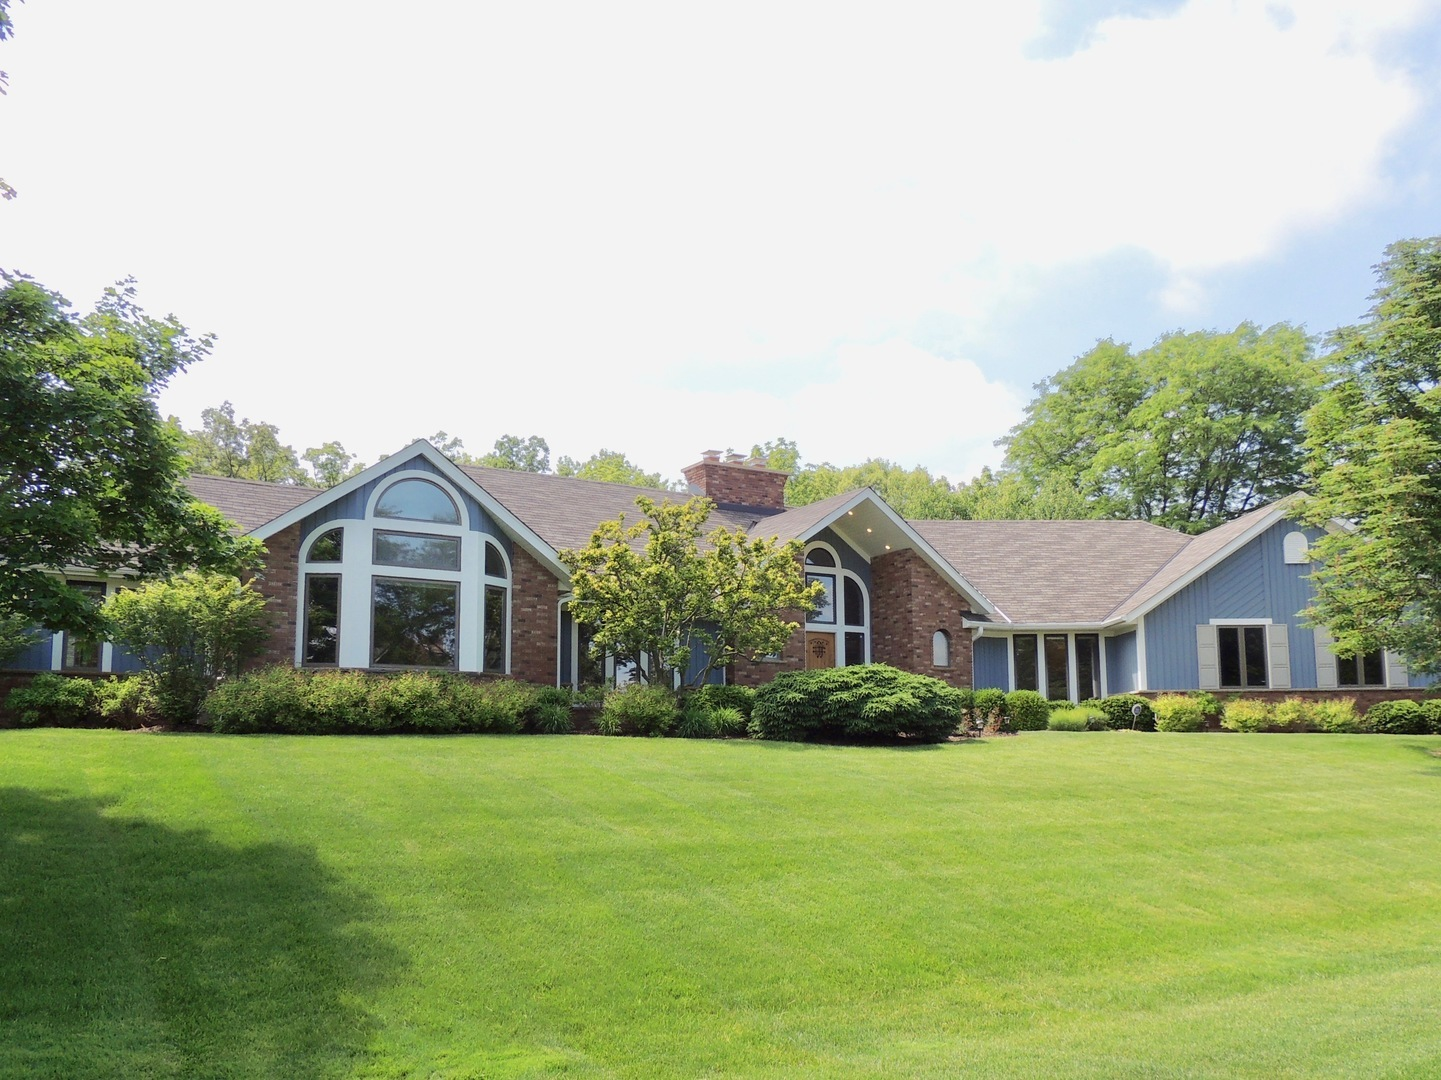 2420 Steeple Chase Circle, Libertyville, Illinois 60048